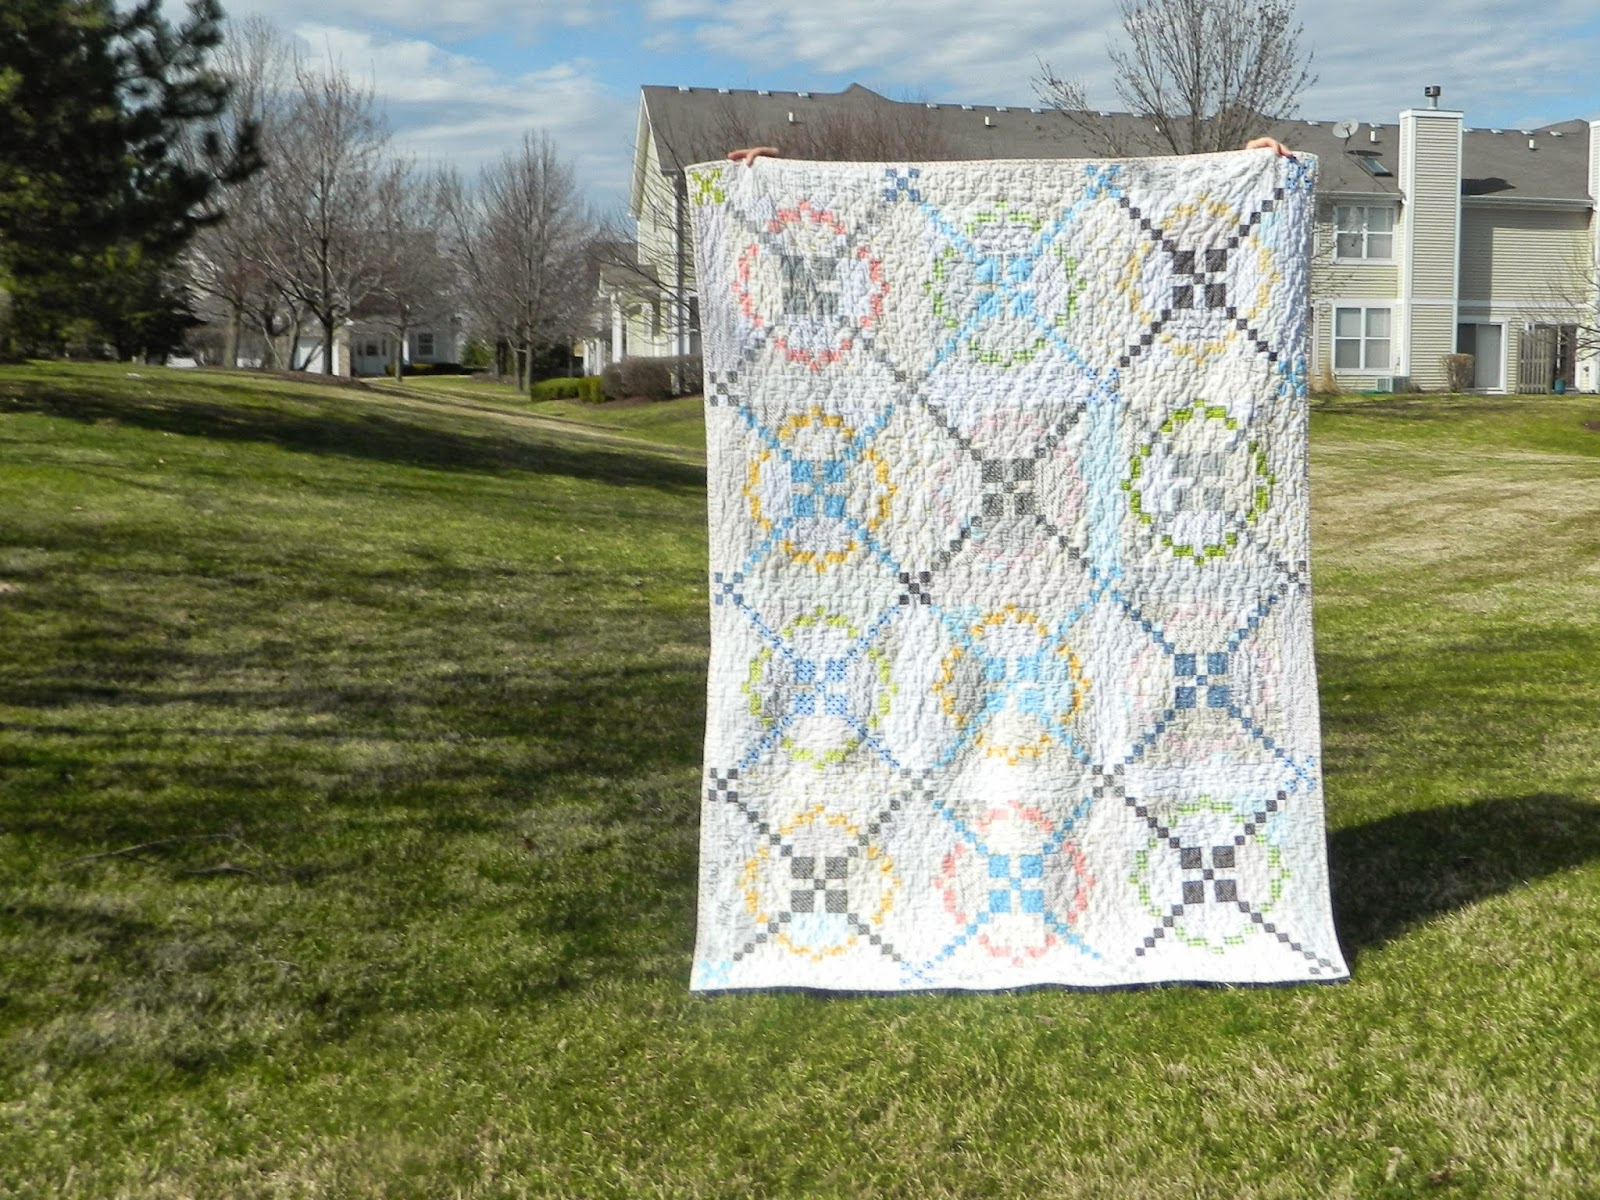 http://sotakhandmade.blogspot.com/2014/04/tone-it-down-finished-quilt.html